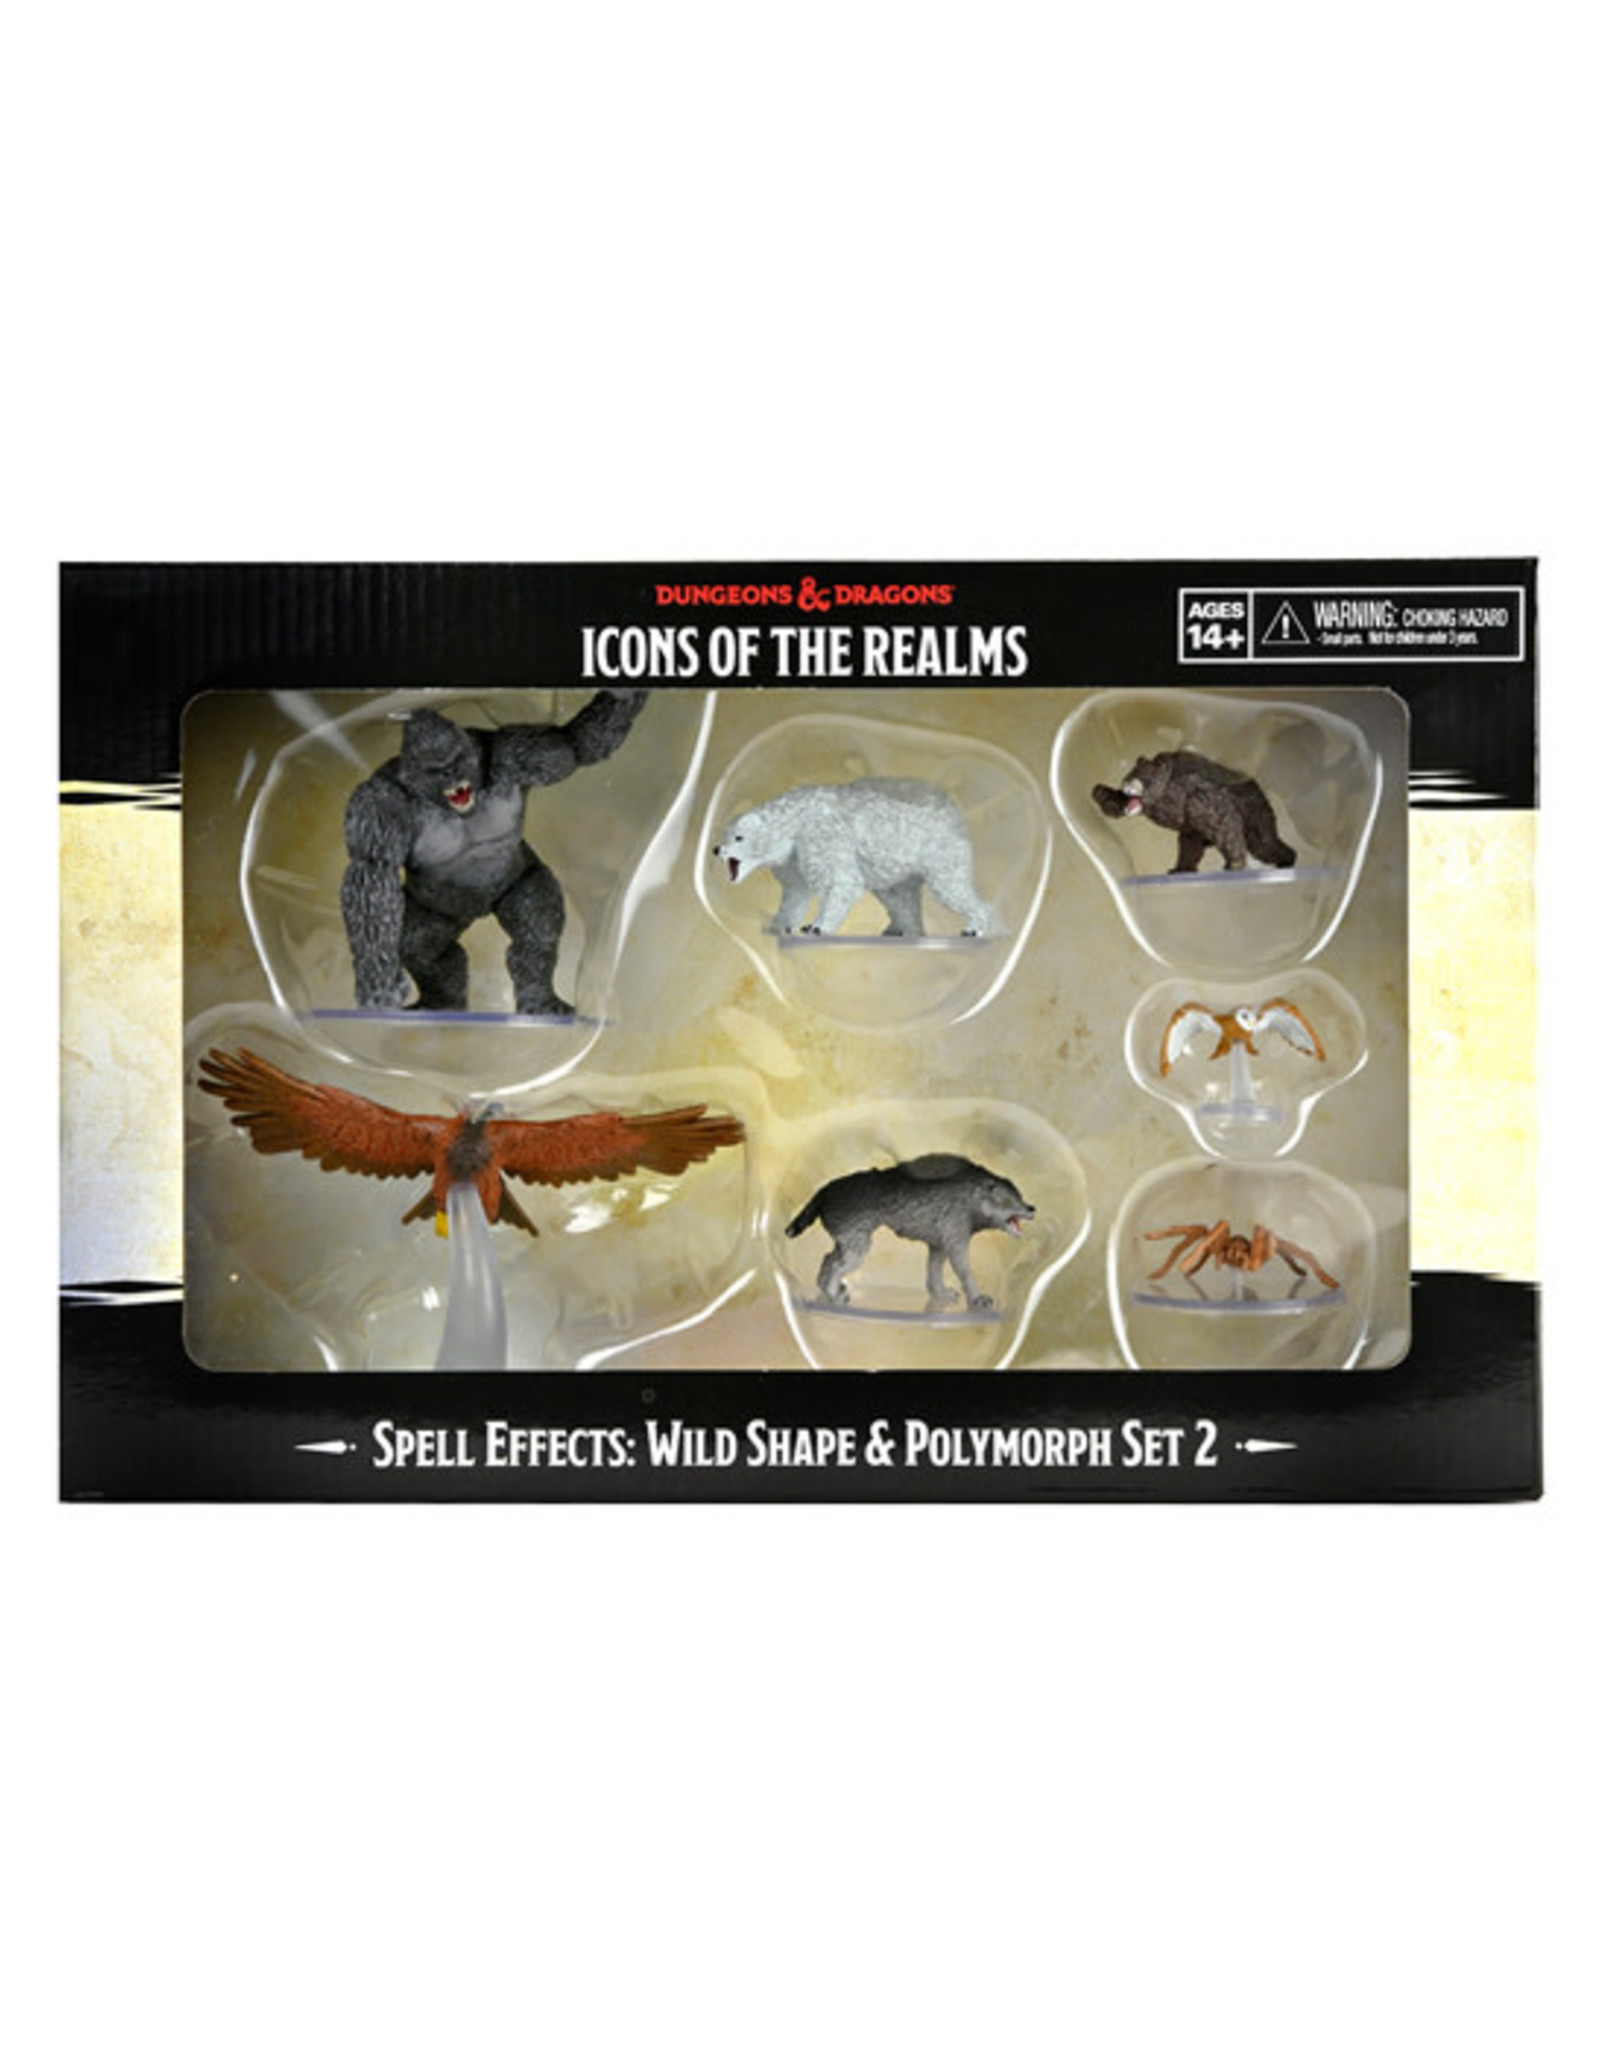 Dungeons & Dragons Dungeons & Dragons: Spell Effects - Wild Shape & Polymorph - Set 2